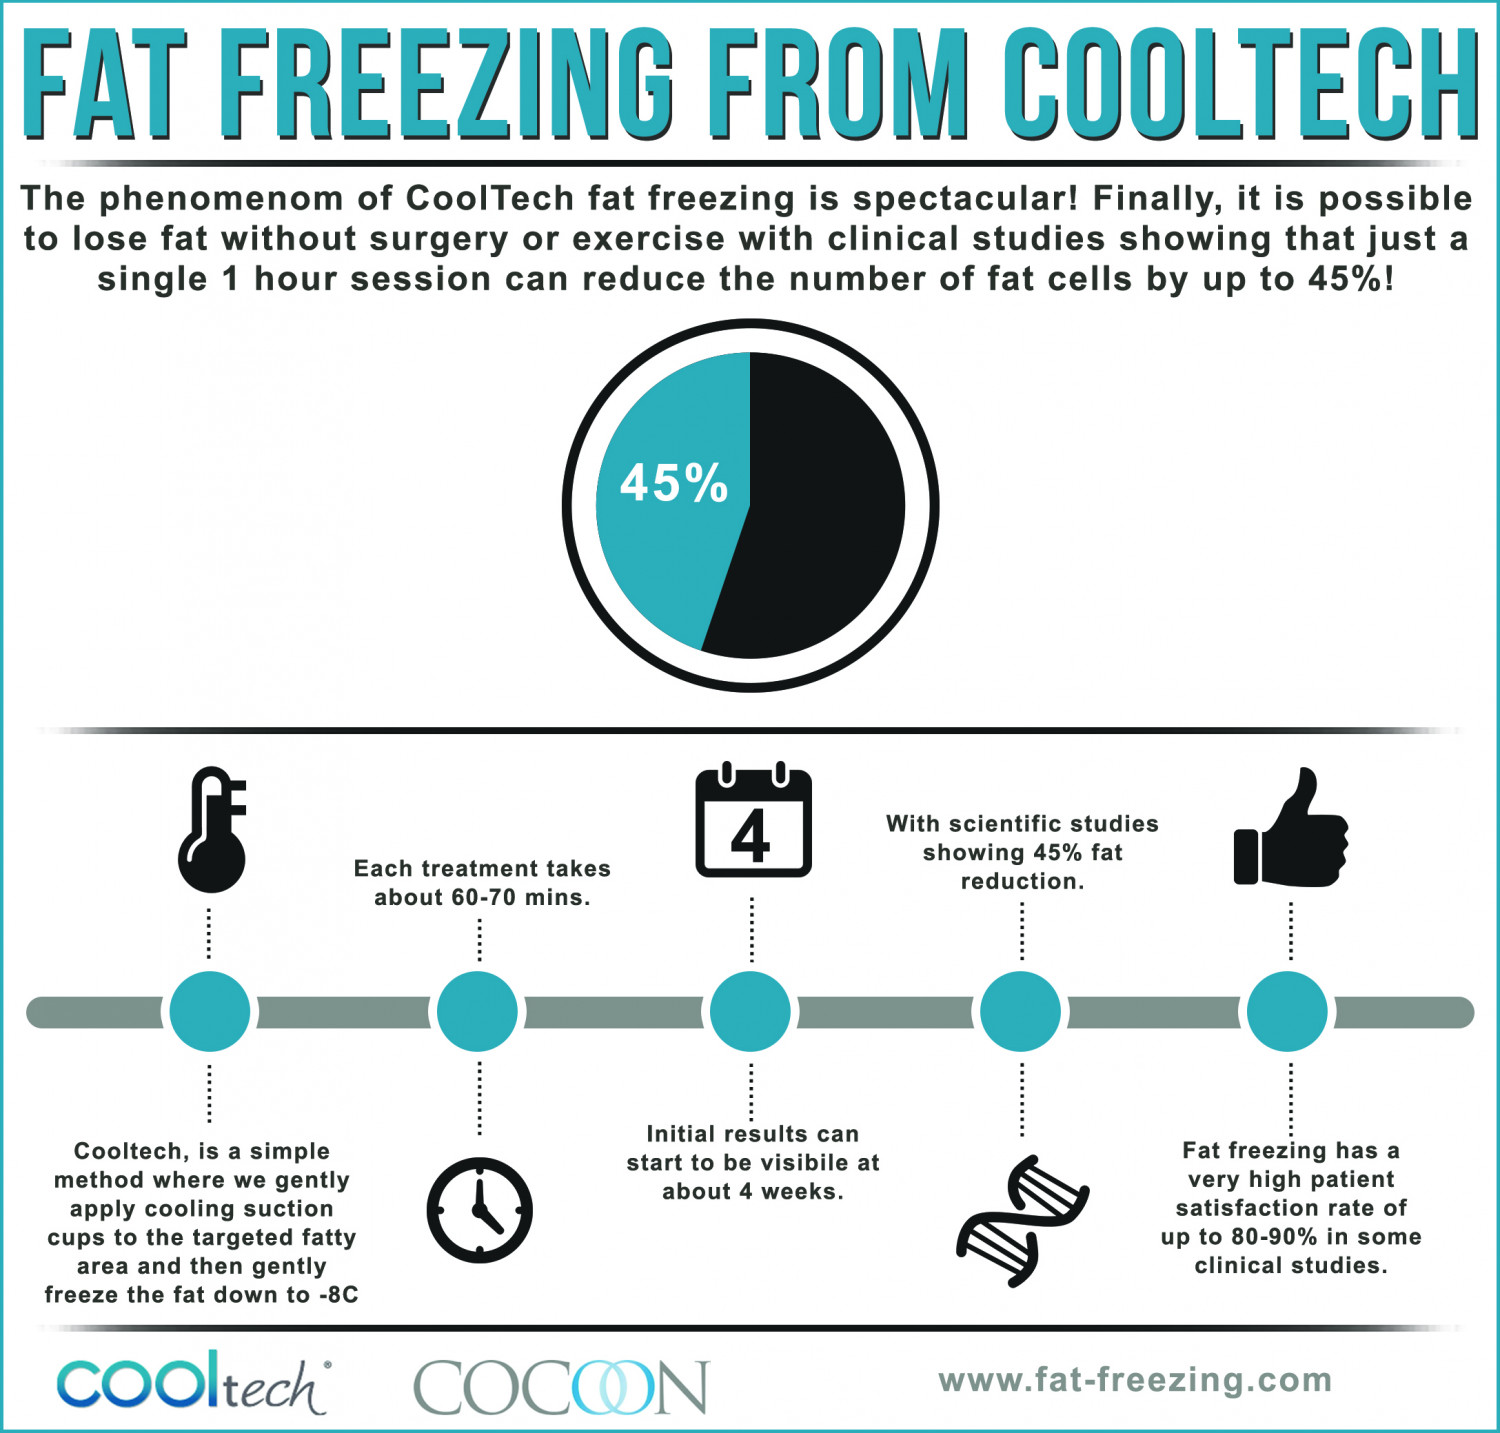 Fat Freezing from Cooltech Infographic